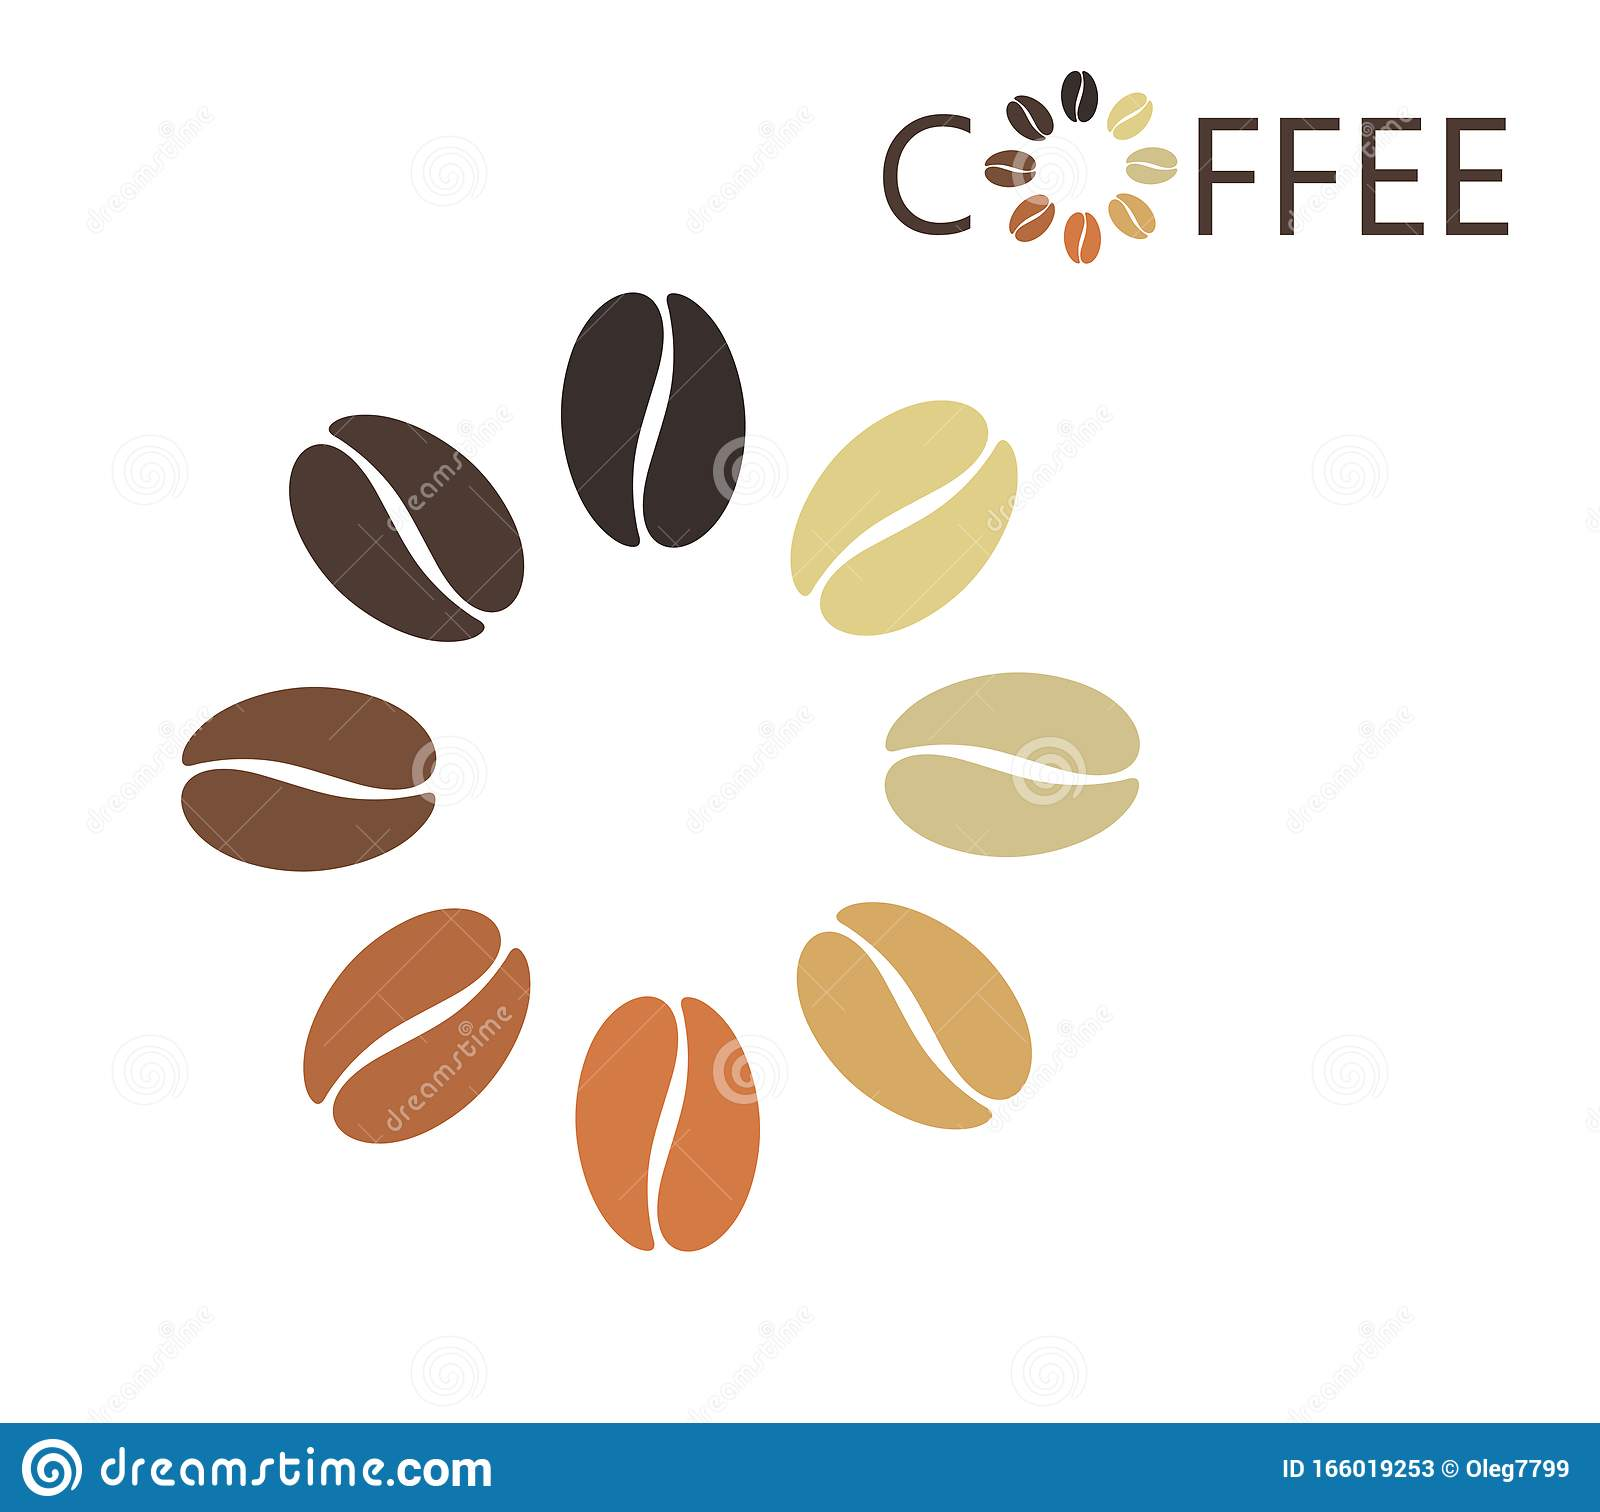 coffee bean logo isolated coffe beans on white background stock vector illustration of bean abstract 166019253 dreamstime com